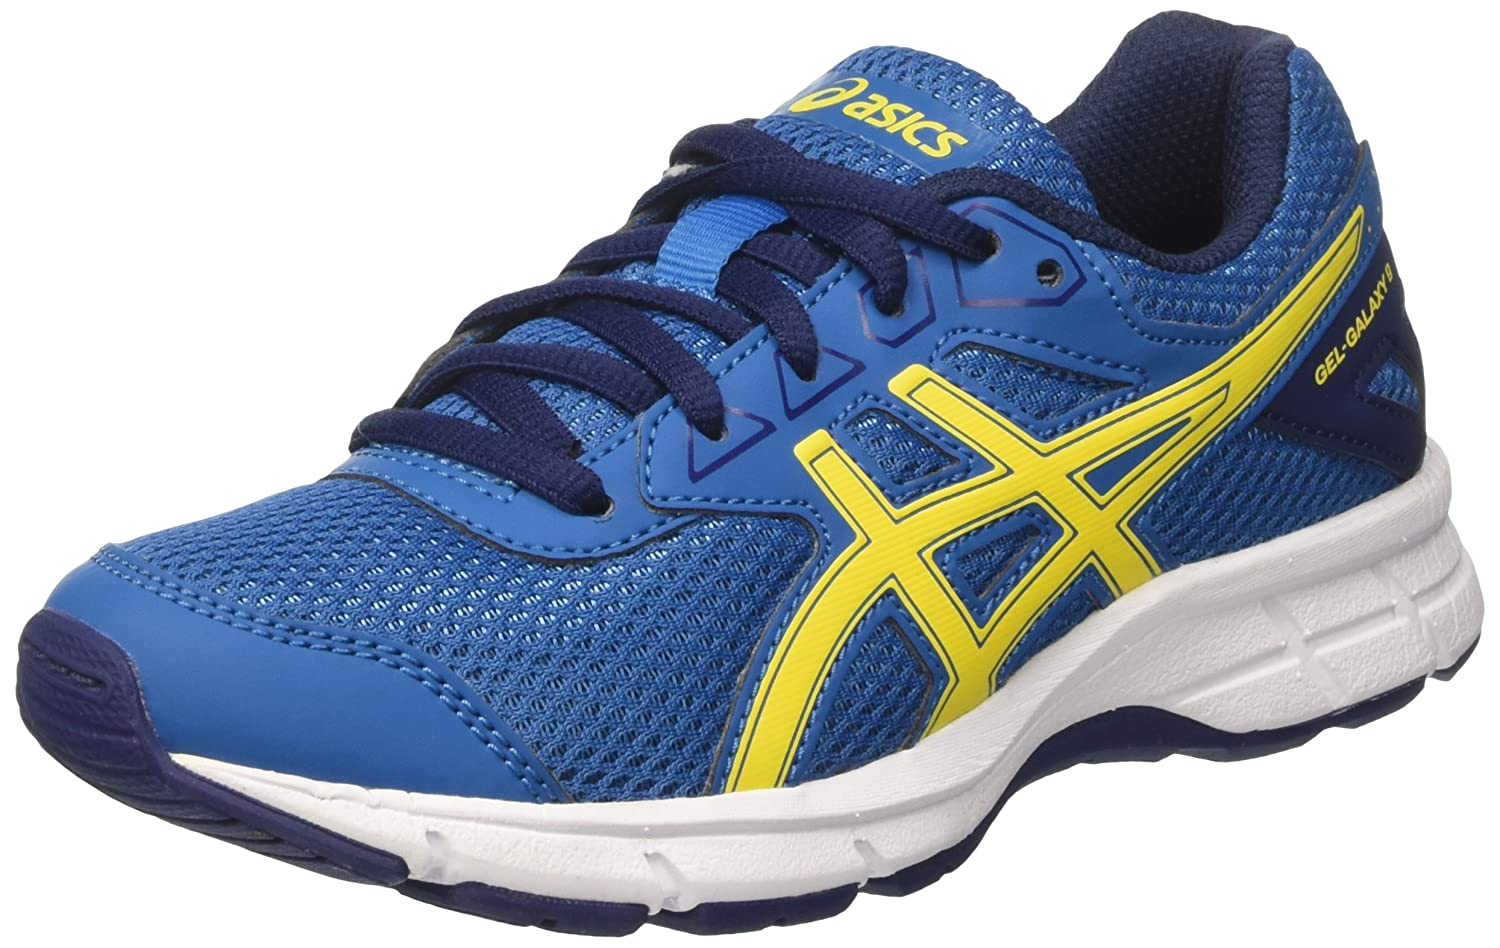 Asics Gel-Galaxy 9 GS, Zapatillas de Running para Niños, (Thunder Blue/Vibrant Yellow/In), 40 EU: Amazon.es: Zapatos y complementos